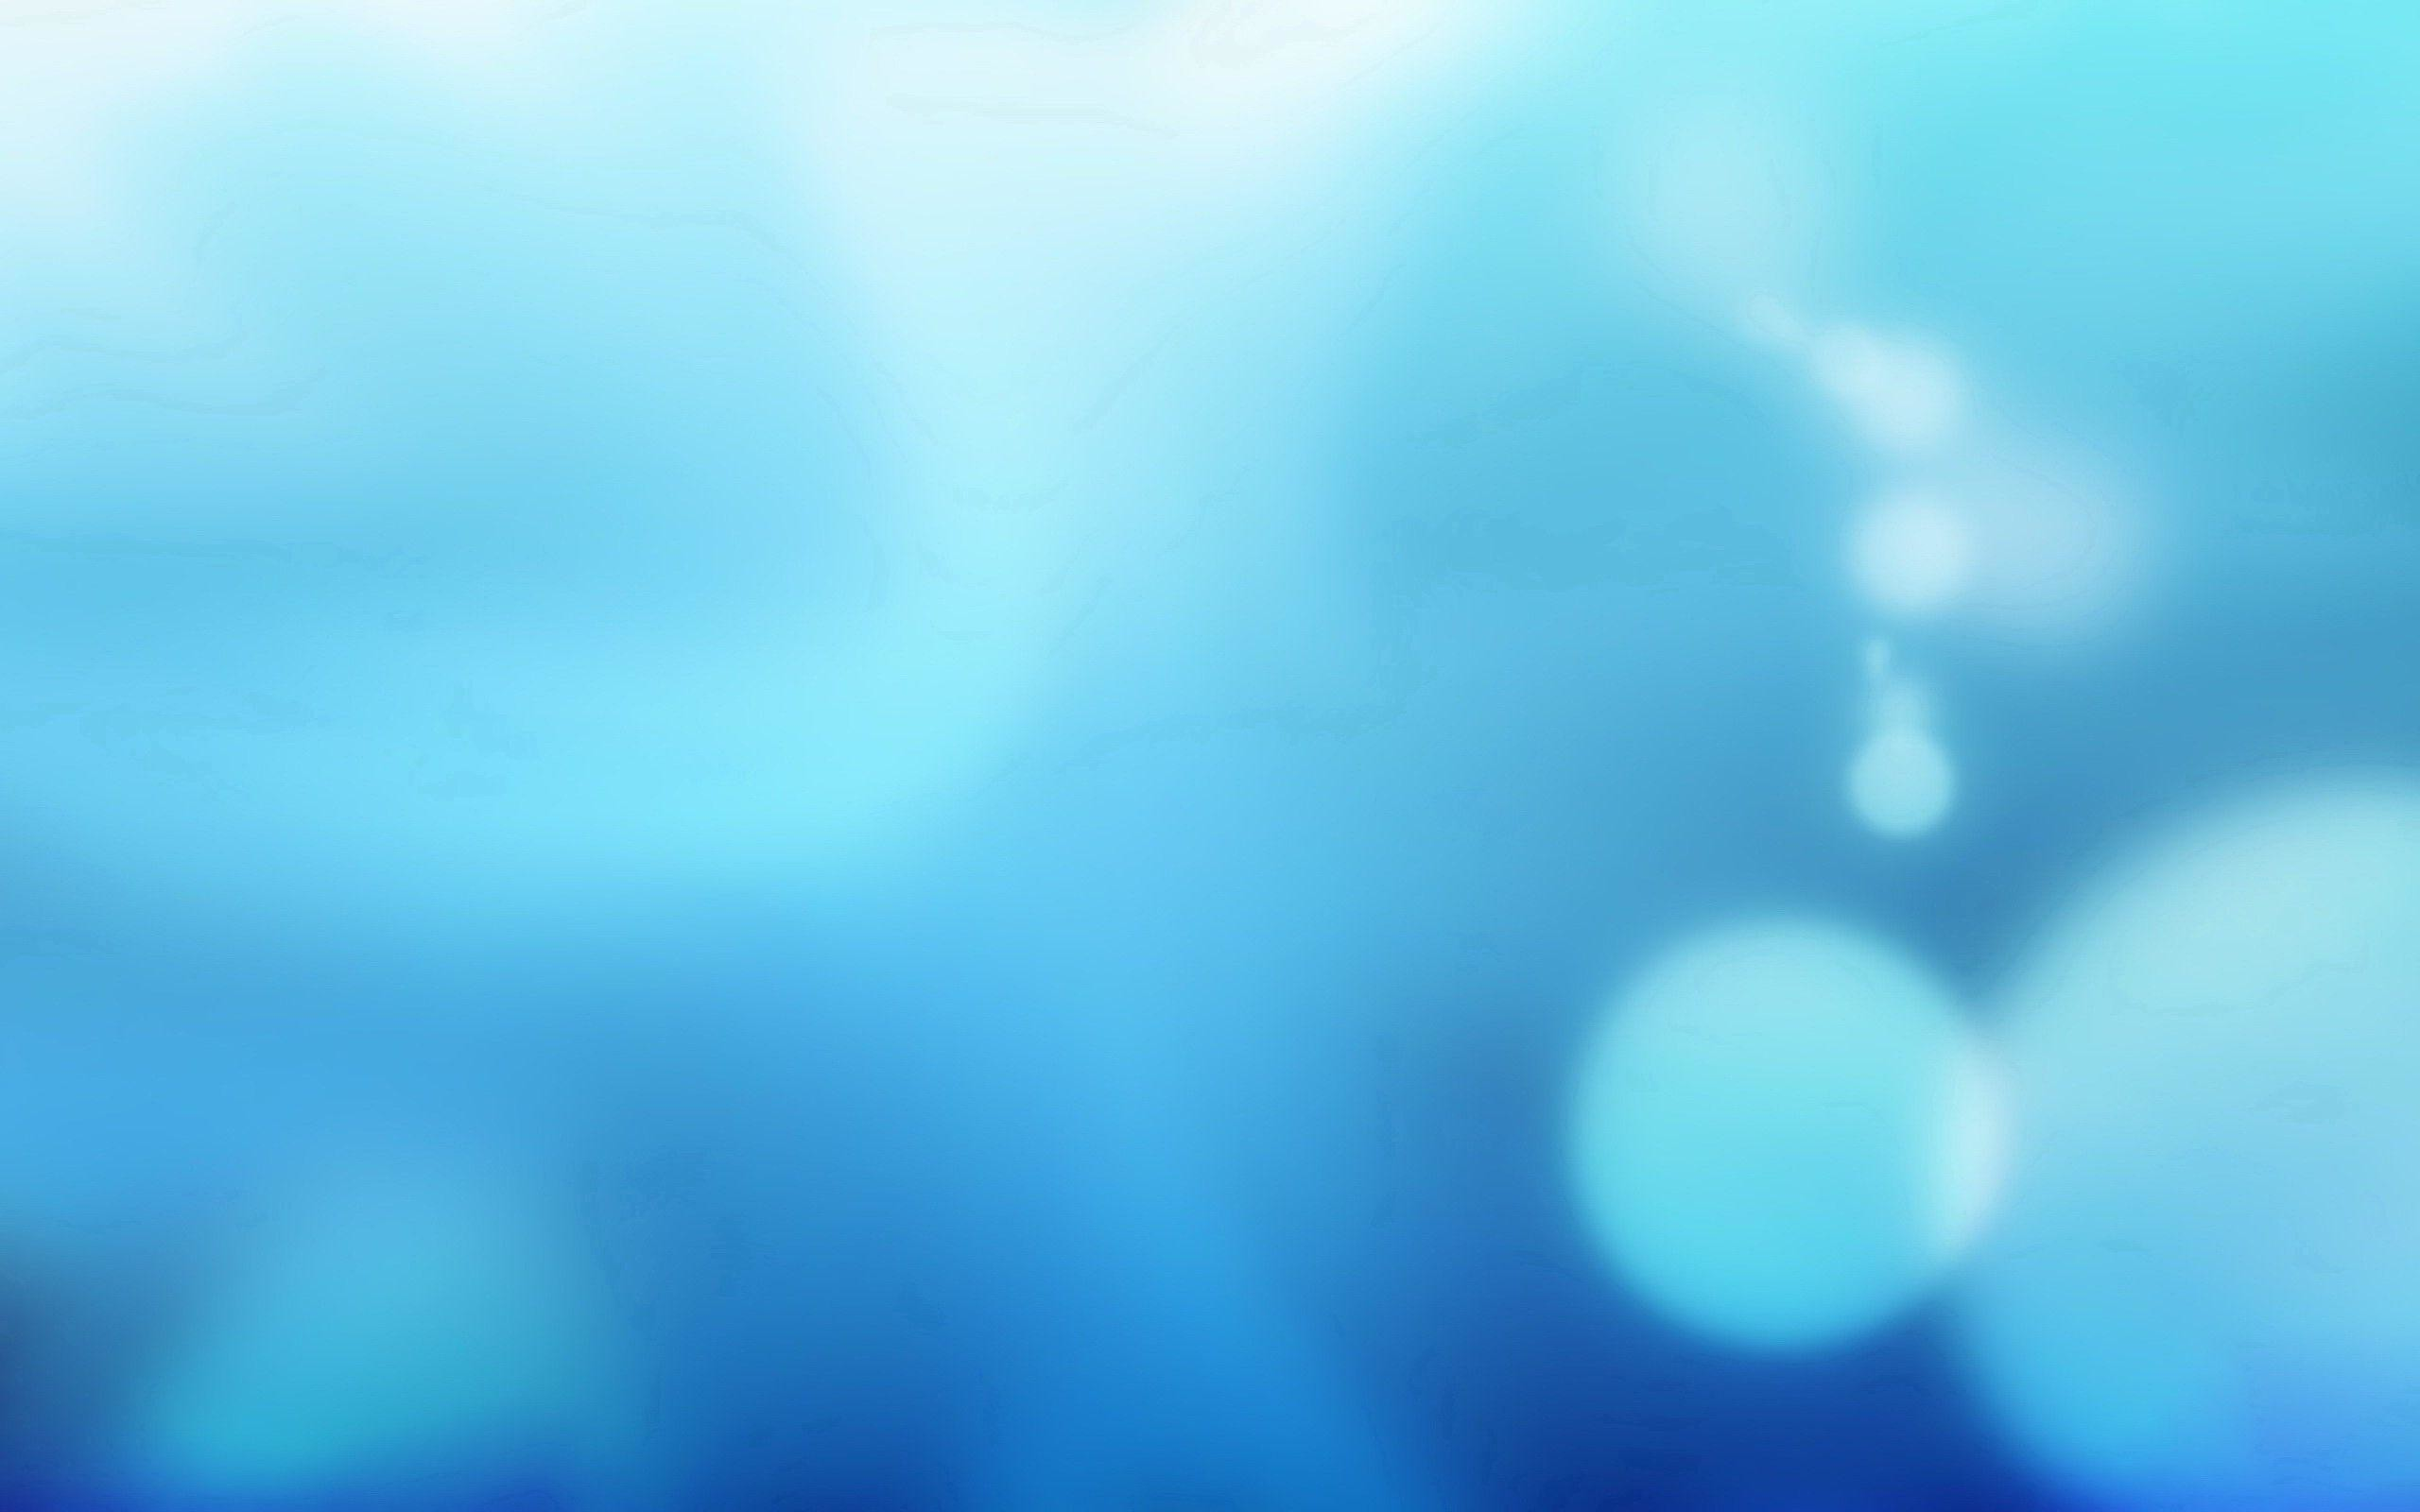 Wallpapers For > Cute Light Blue Backgrounds